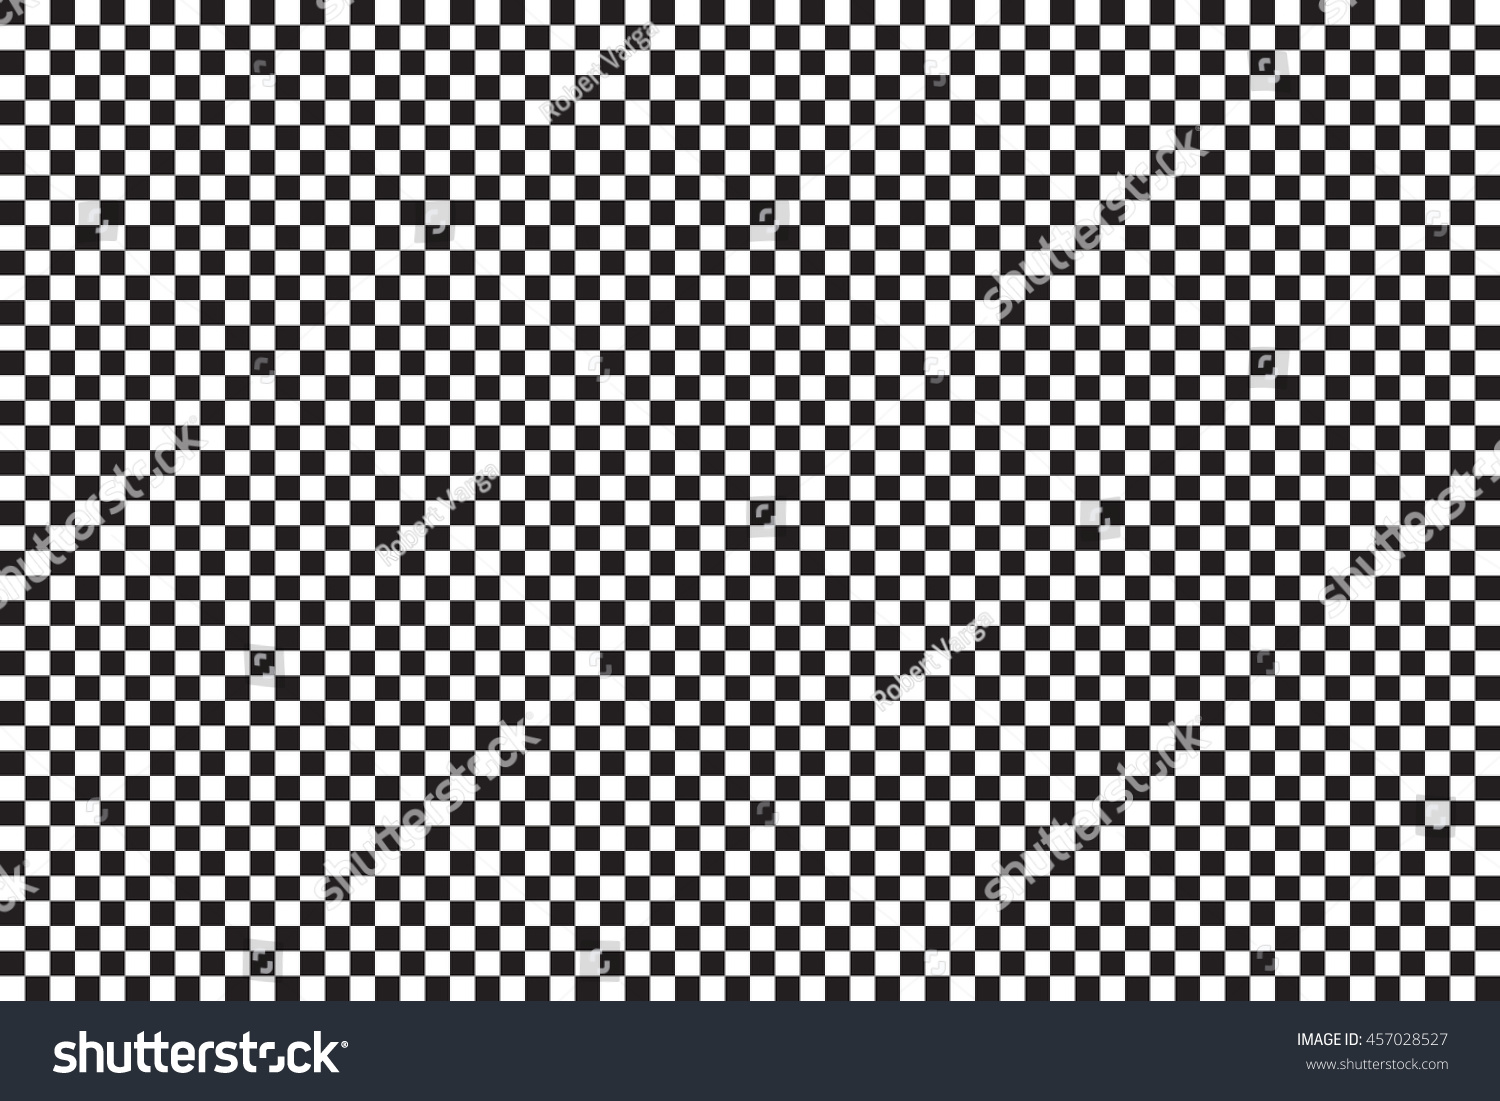 Black White Squares Background Stock Vector 457028527 ...